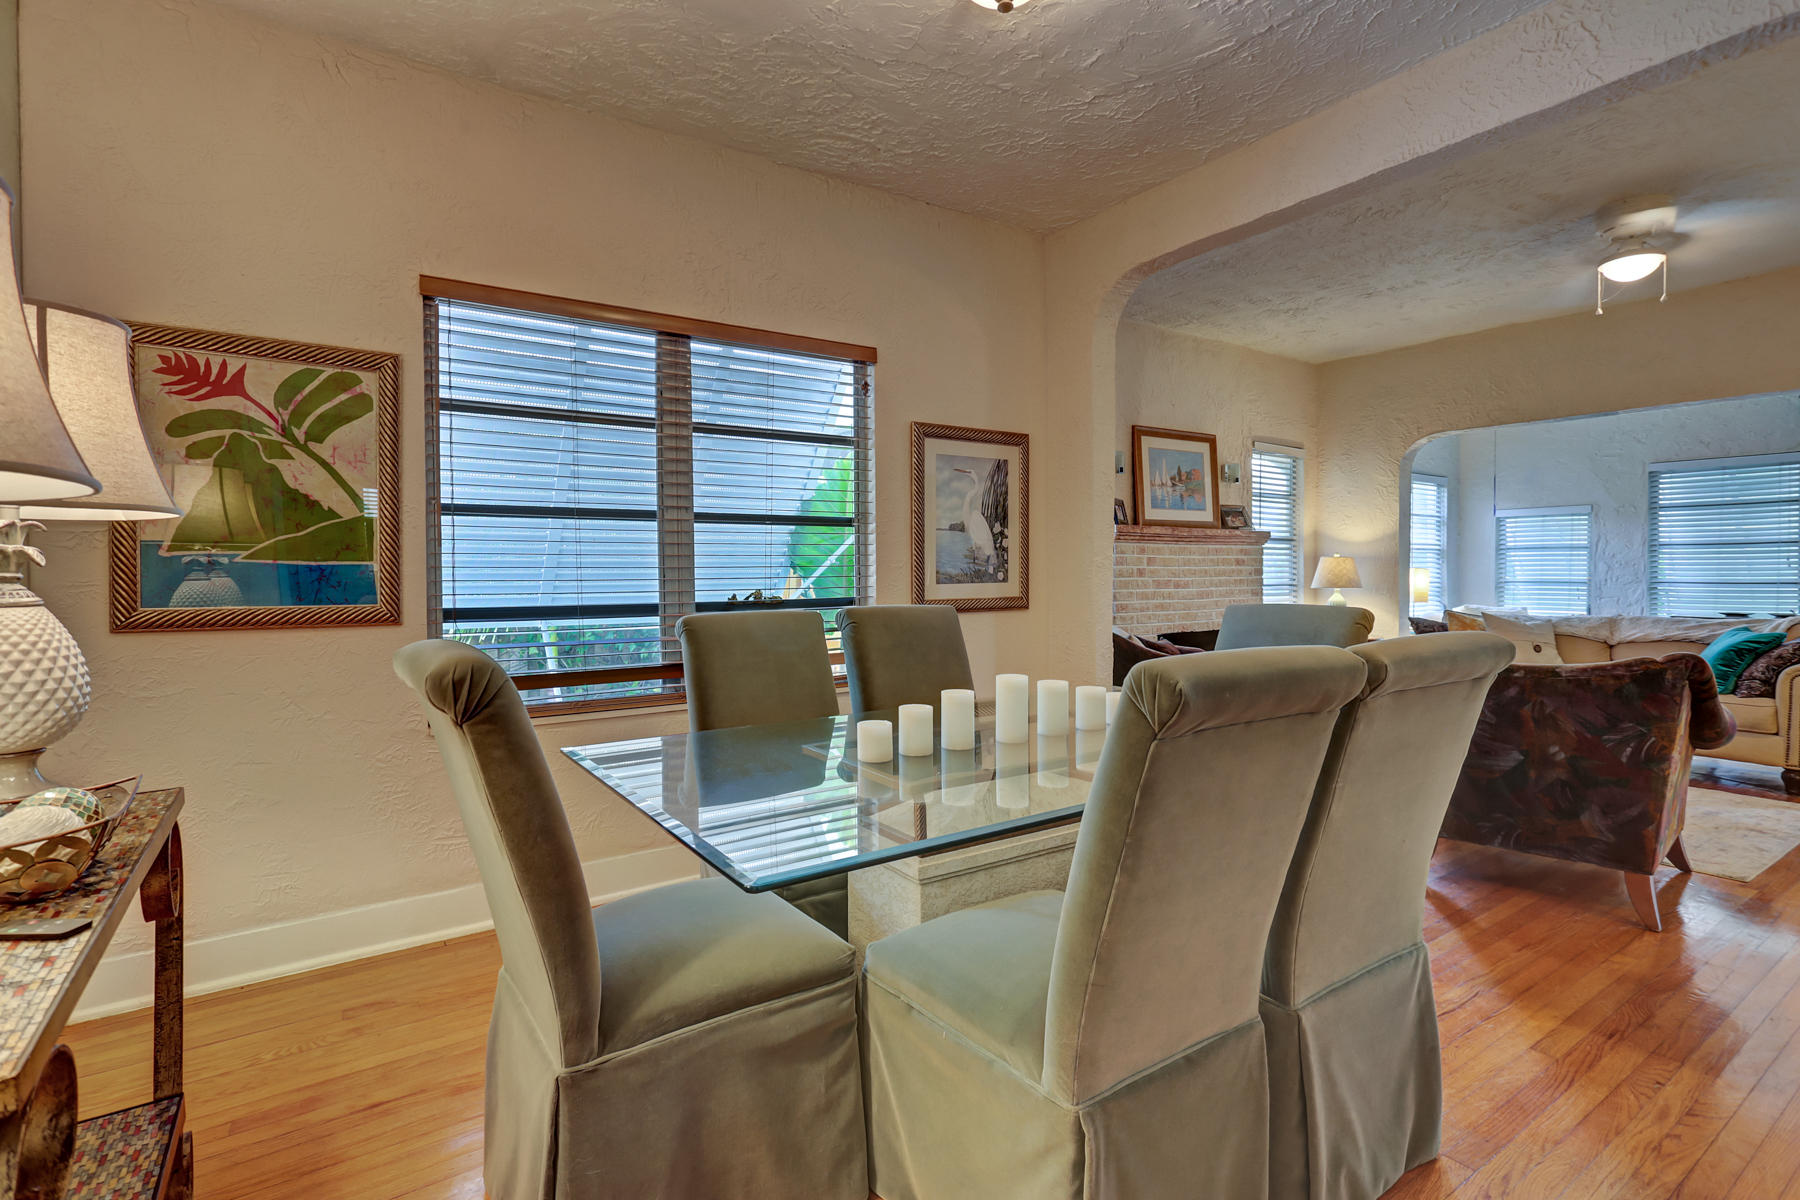 BELAIR HOMES FOR SALE